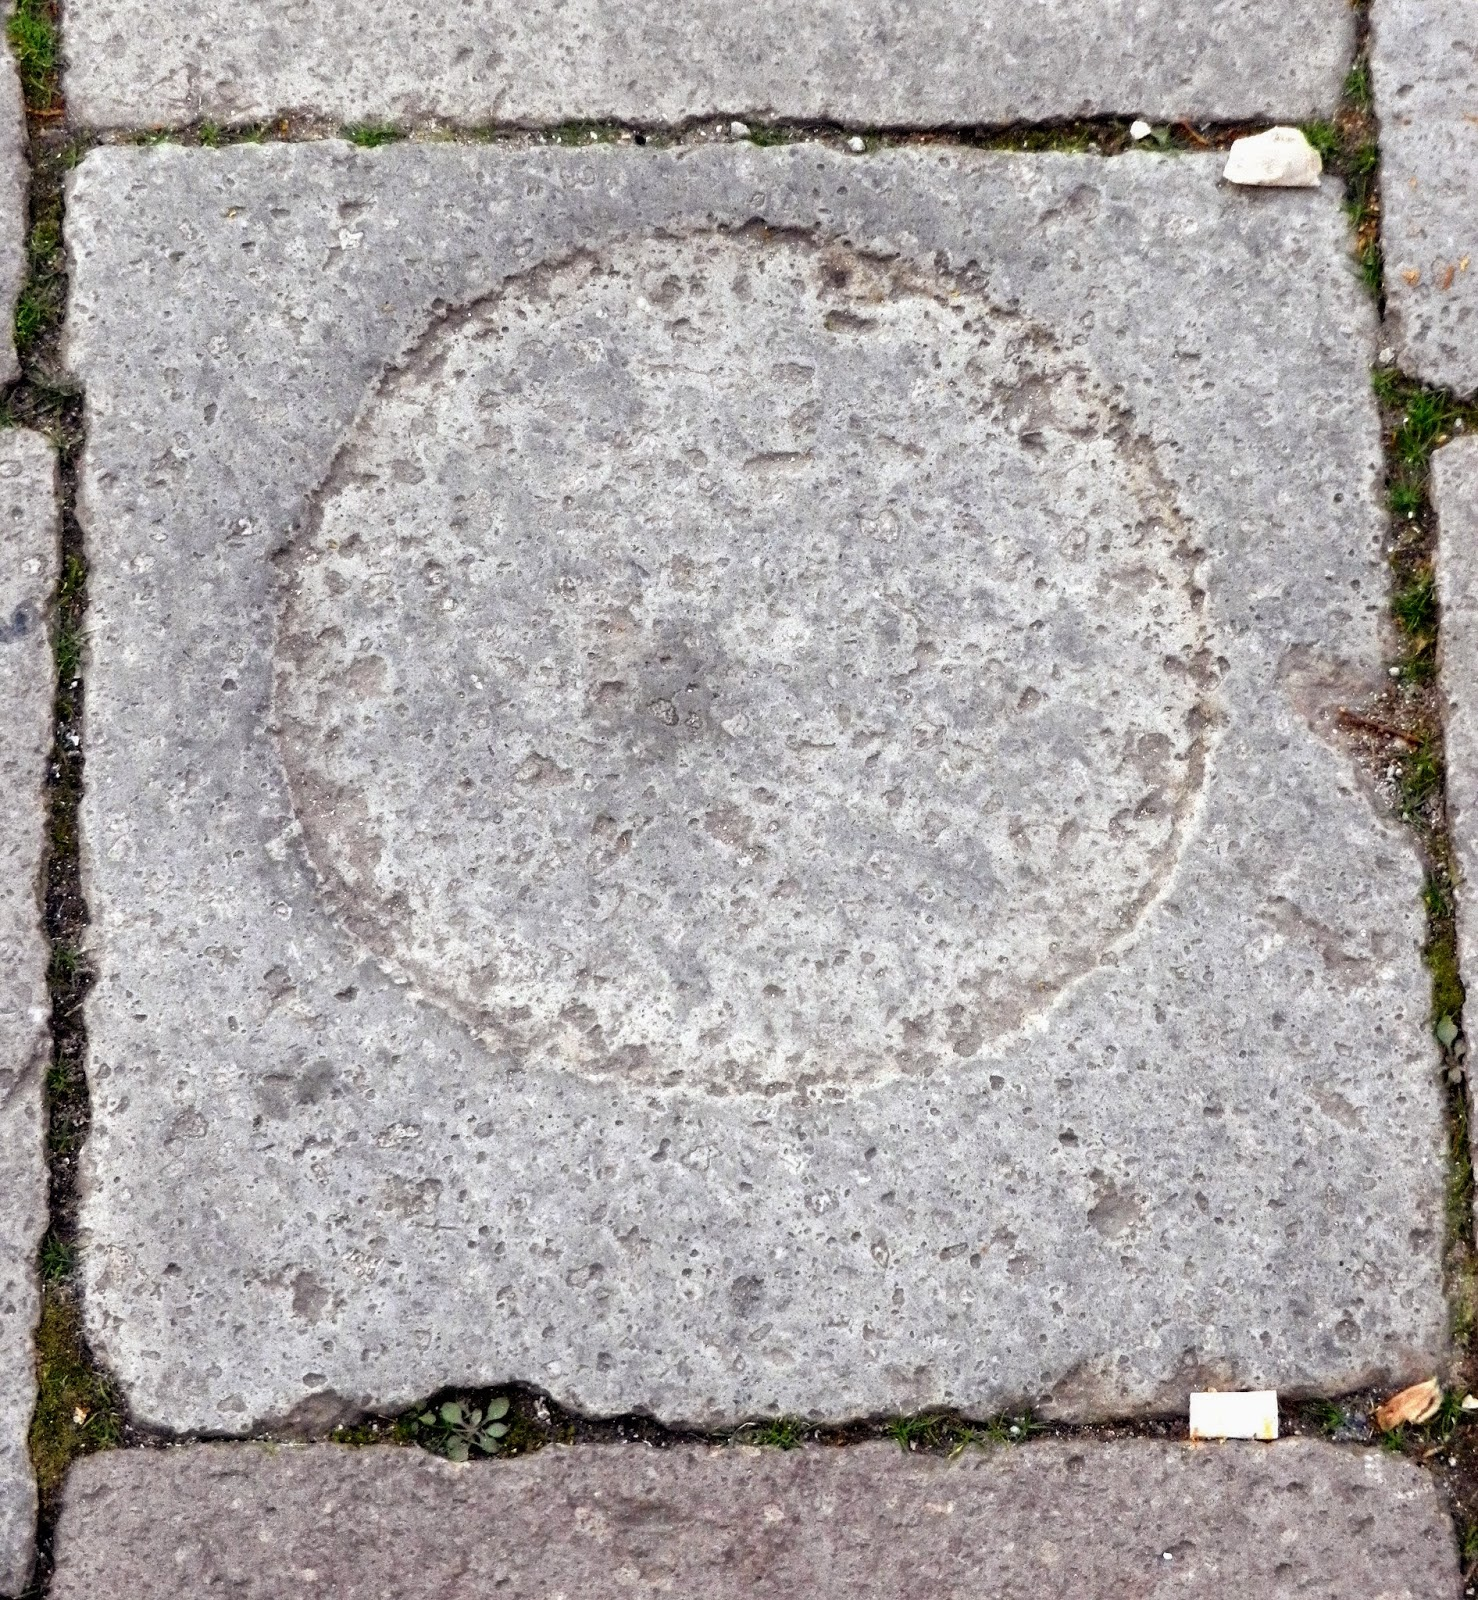 Teriaca and the making of the circular marks in the pavement of the Campo Santo Stefano, Venice